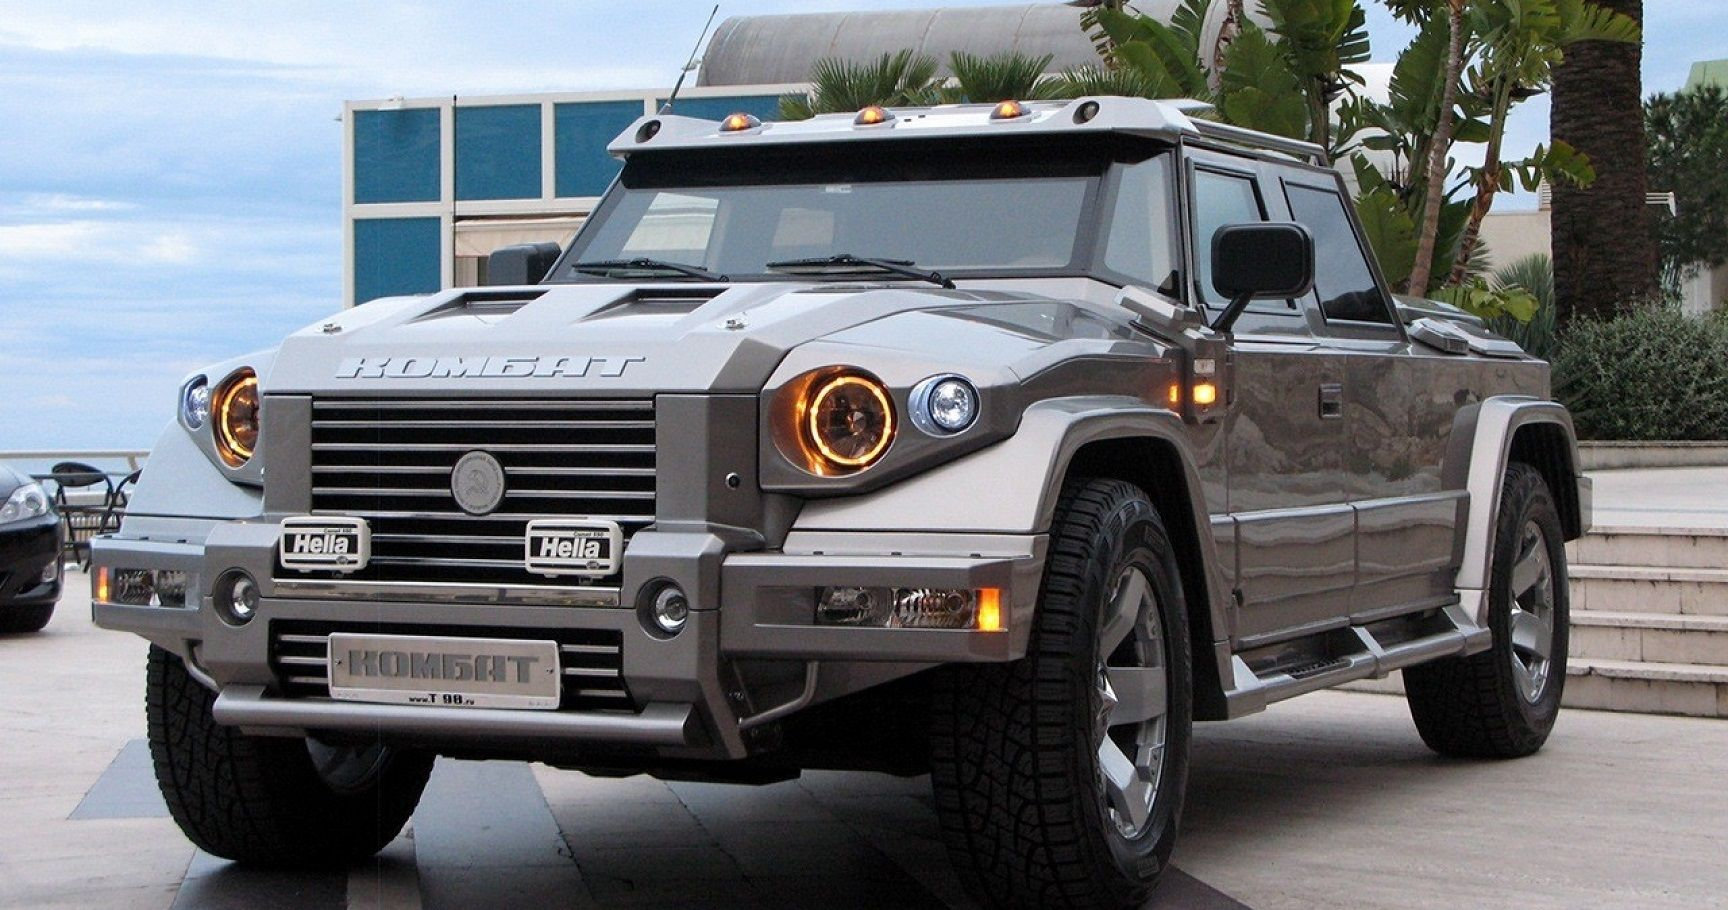 Top 10 Most Expensive Suvs On The Market In 2014 Therichest